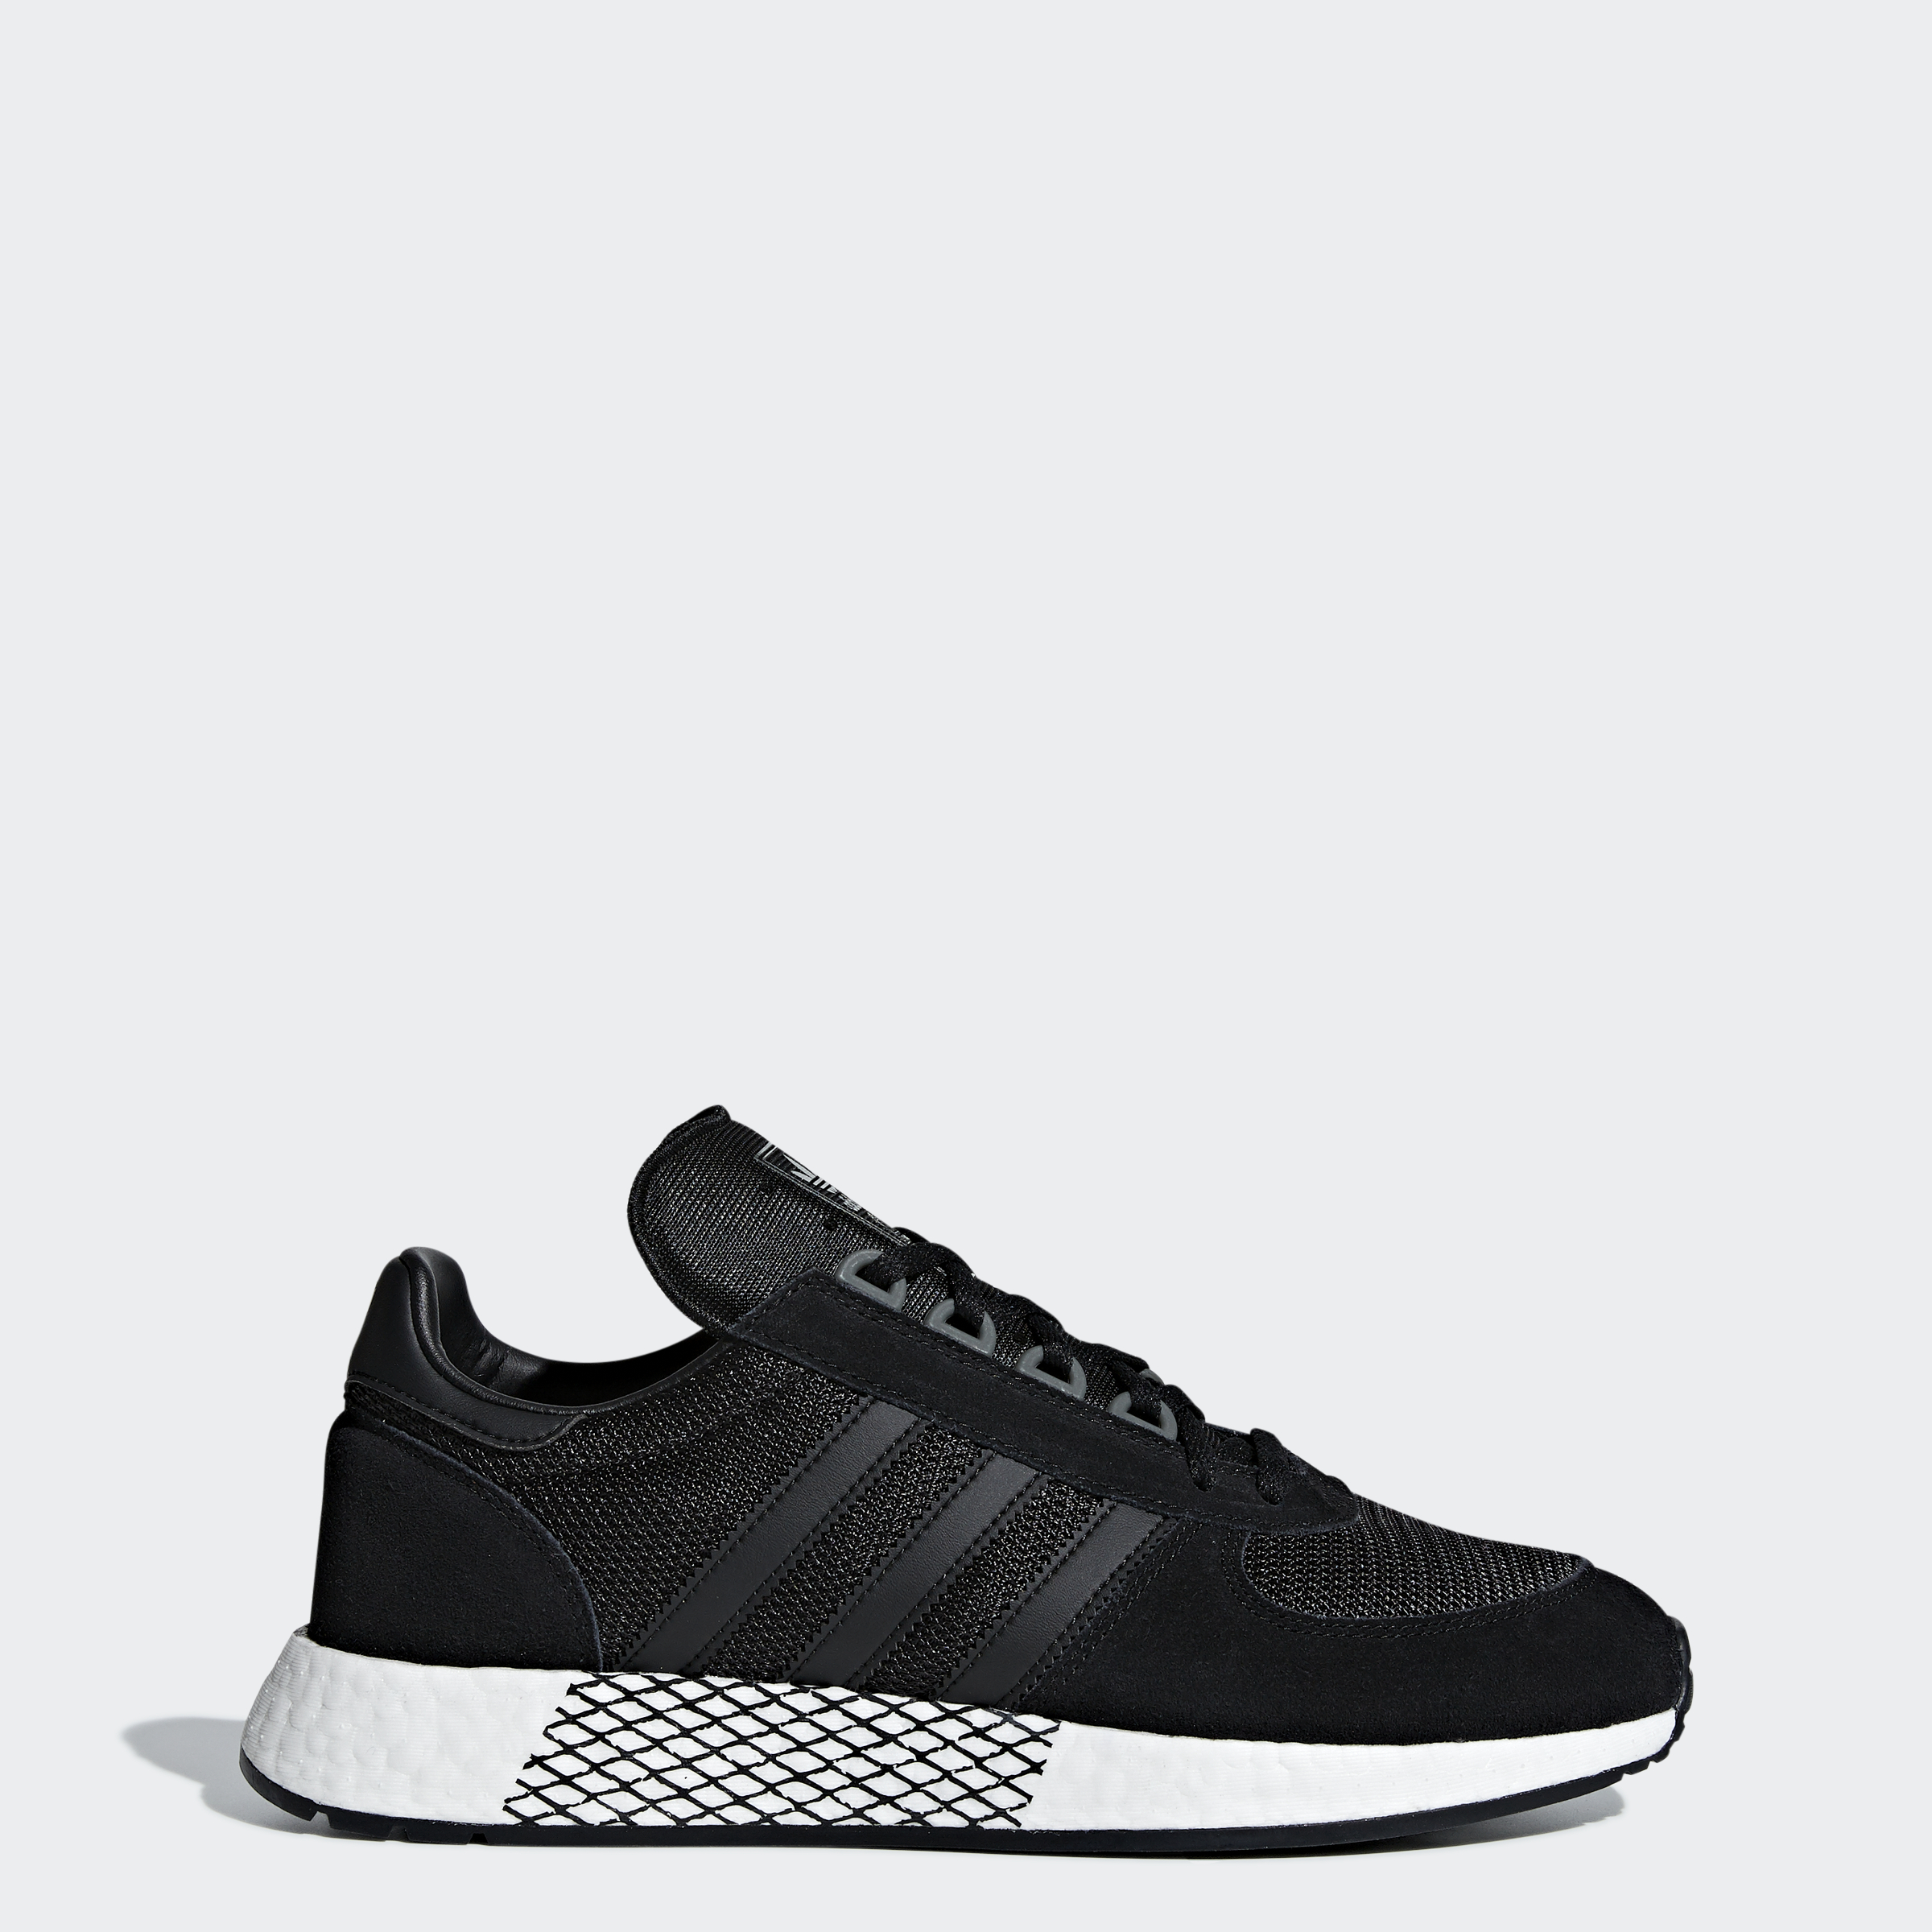 adidas Originals Marathonx5923 Shoes Men's Core Black / Utility Black